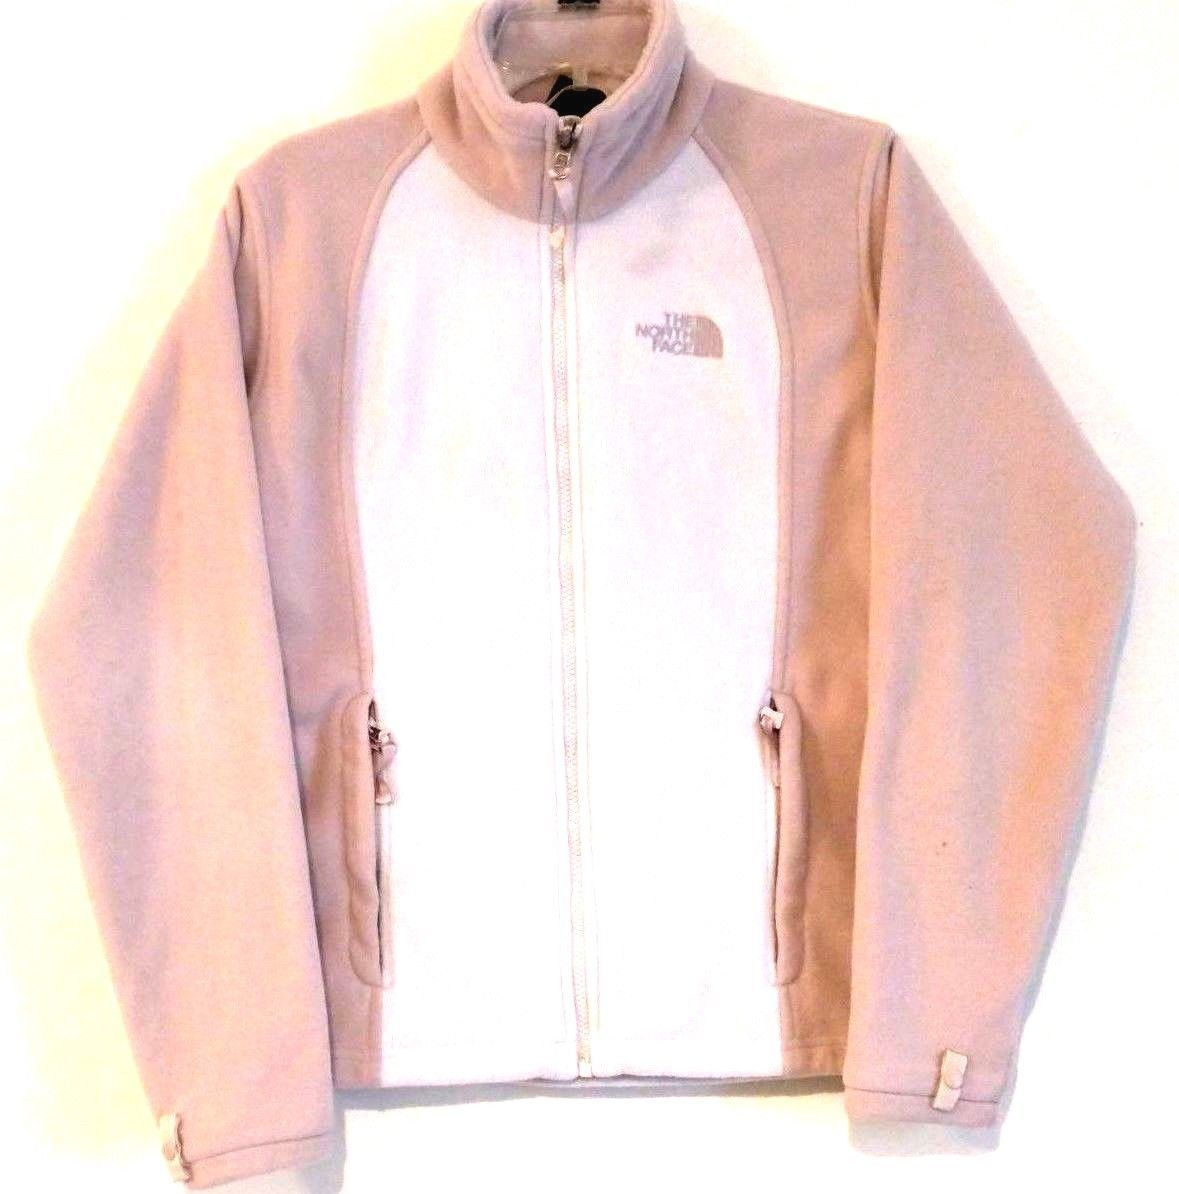 c1e5863183 The North Face - Tan And Off White Fleece and 50 similar items. S l1600